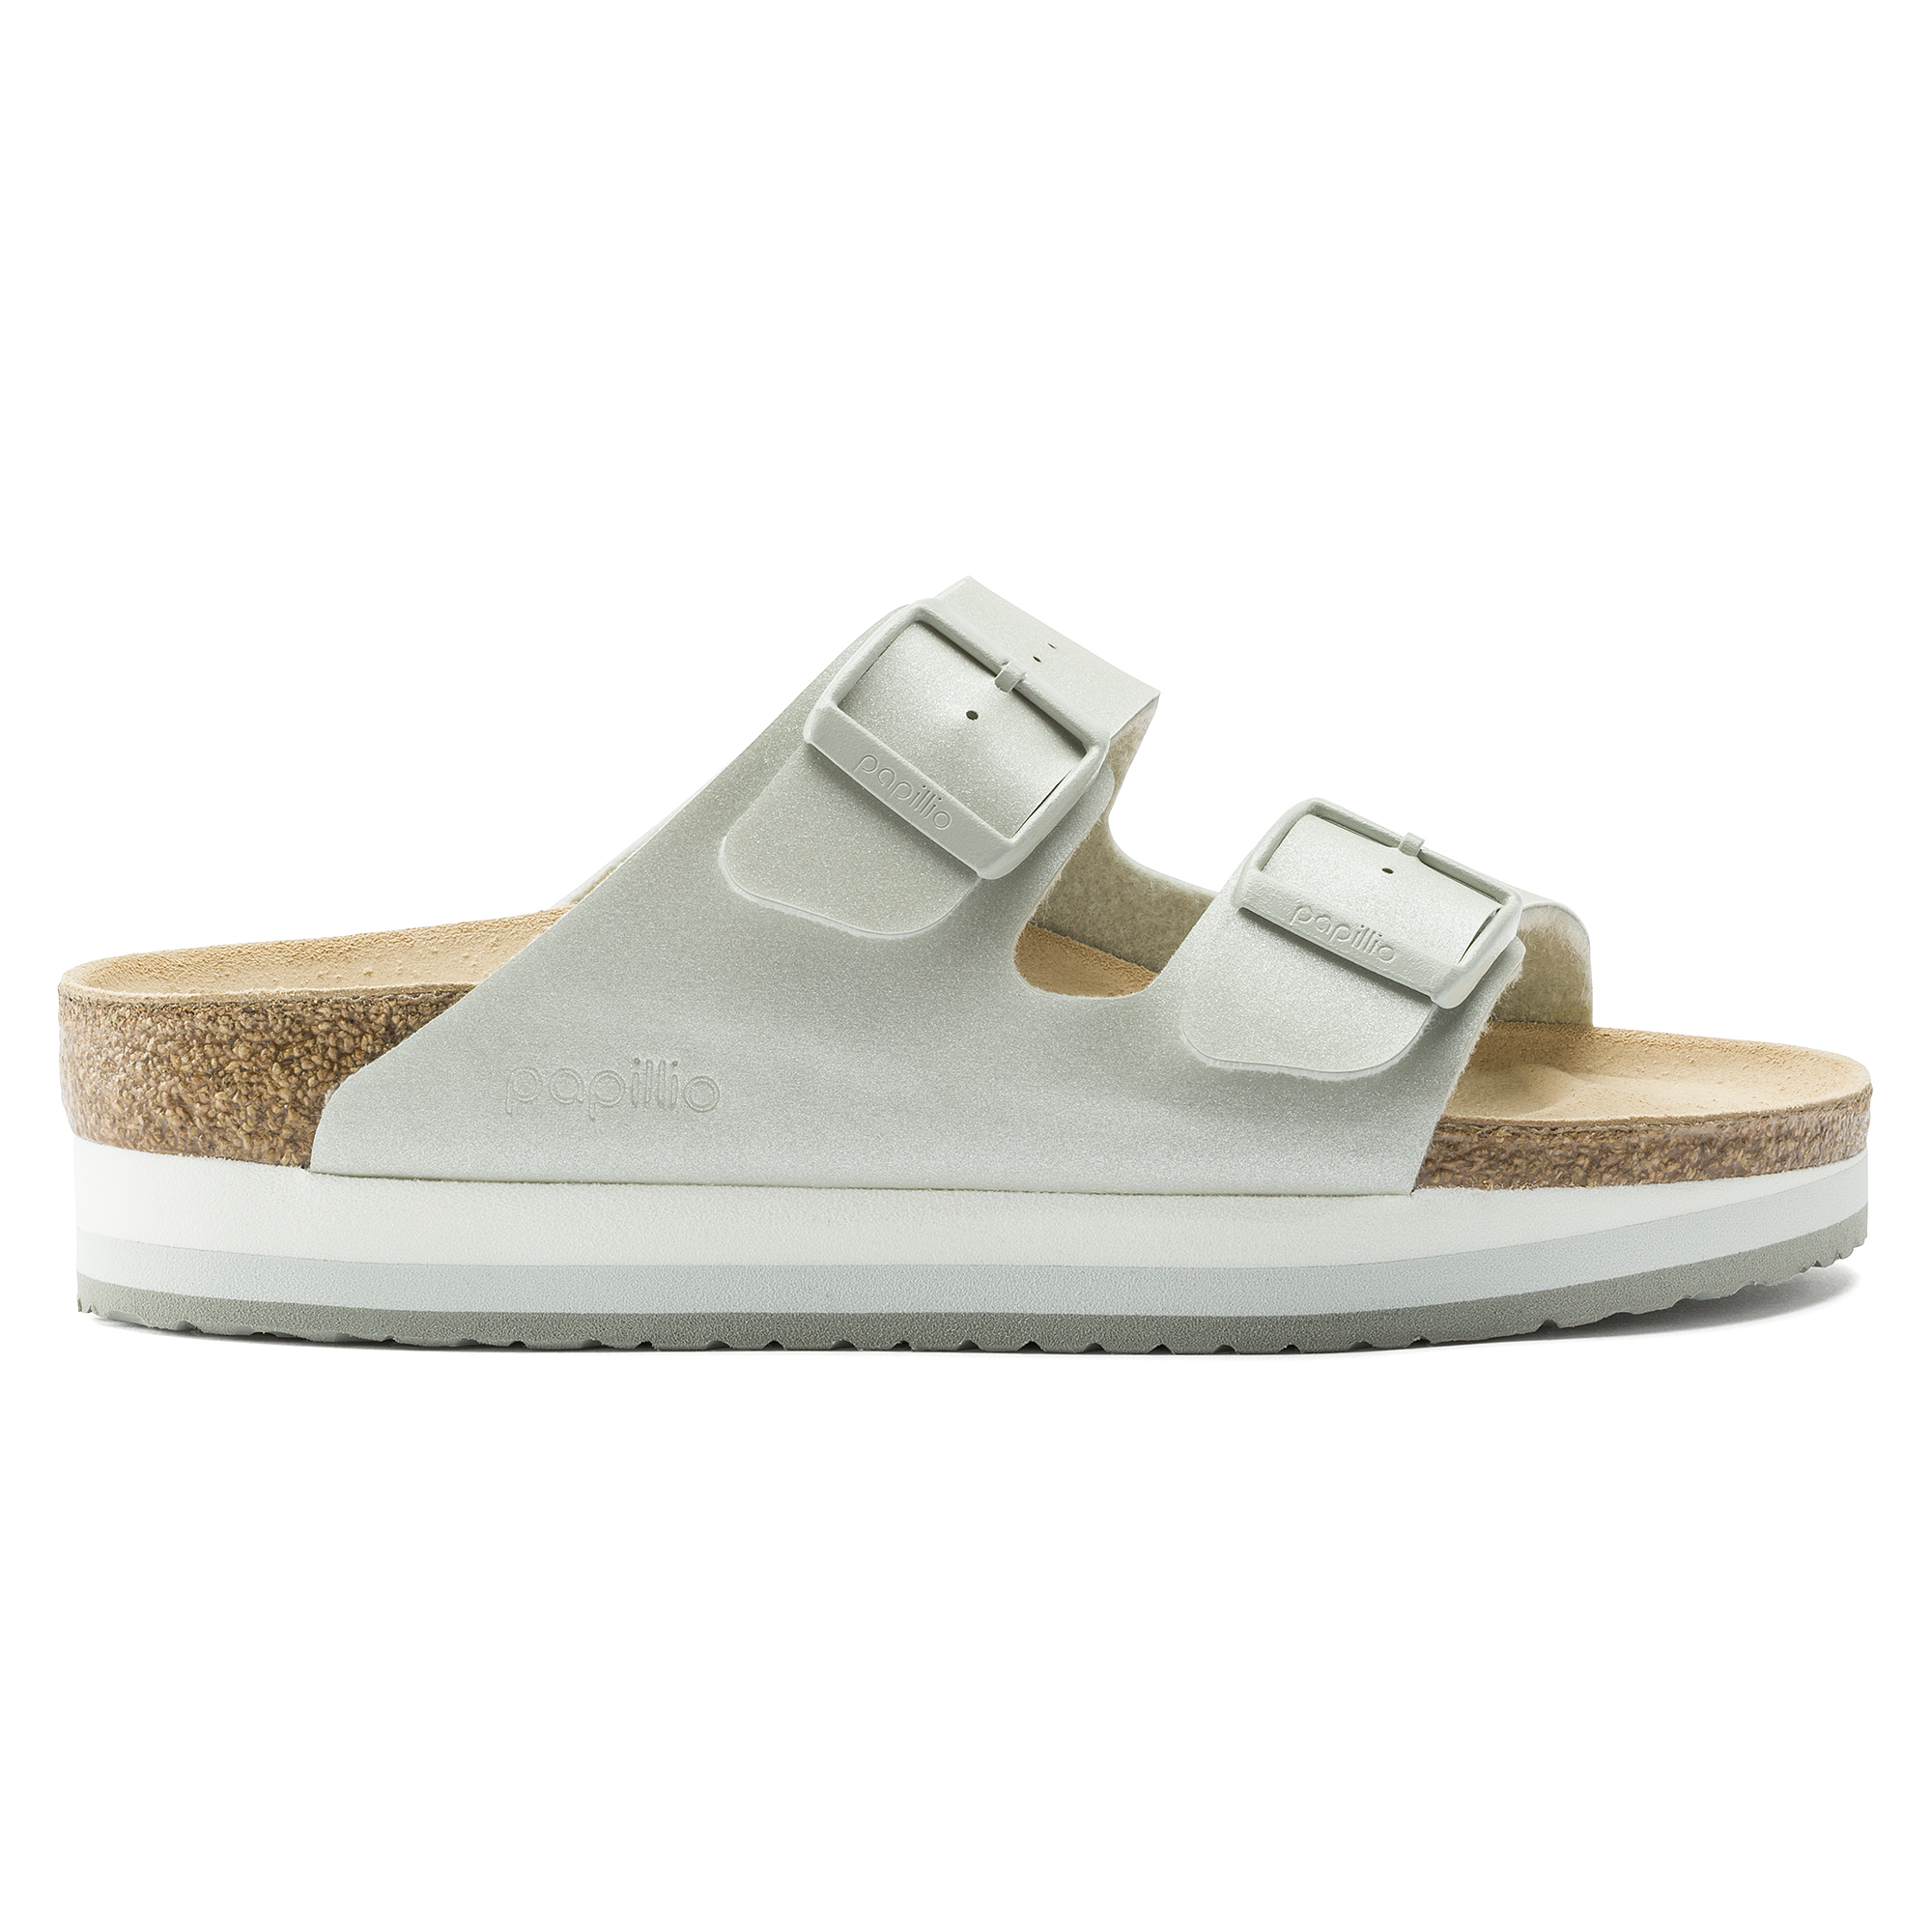 BIRKENSTOCK BIRKENSTOCK Arizona Birko Flor Icy Metallic Mineral Platform Two Strap Sandals Women's Size 4 from Birkenstock | ShapeShop